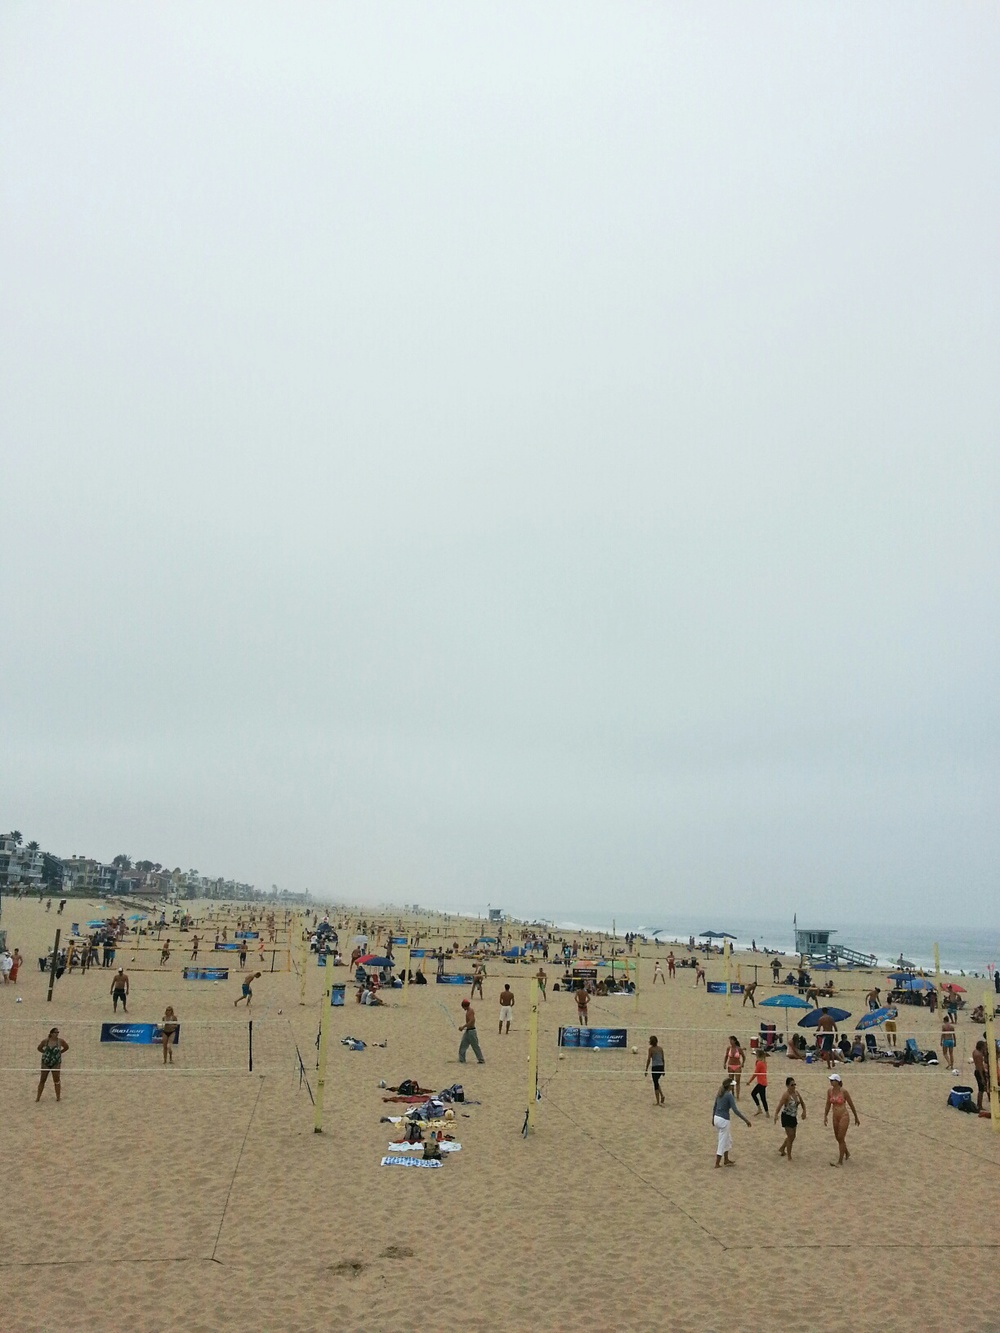 manhattan beach is famous for their volleyball